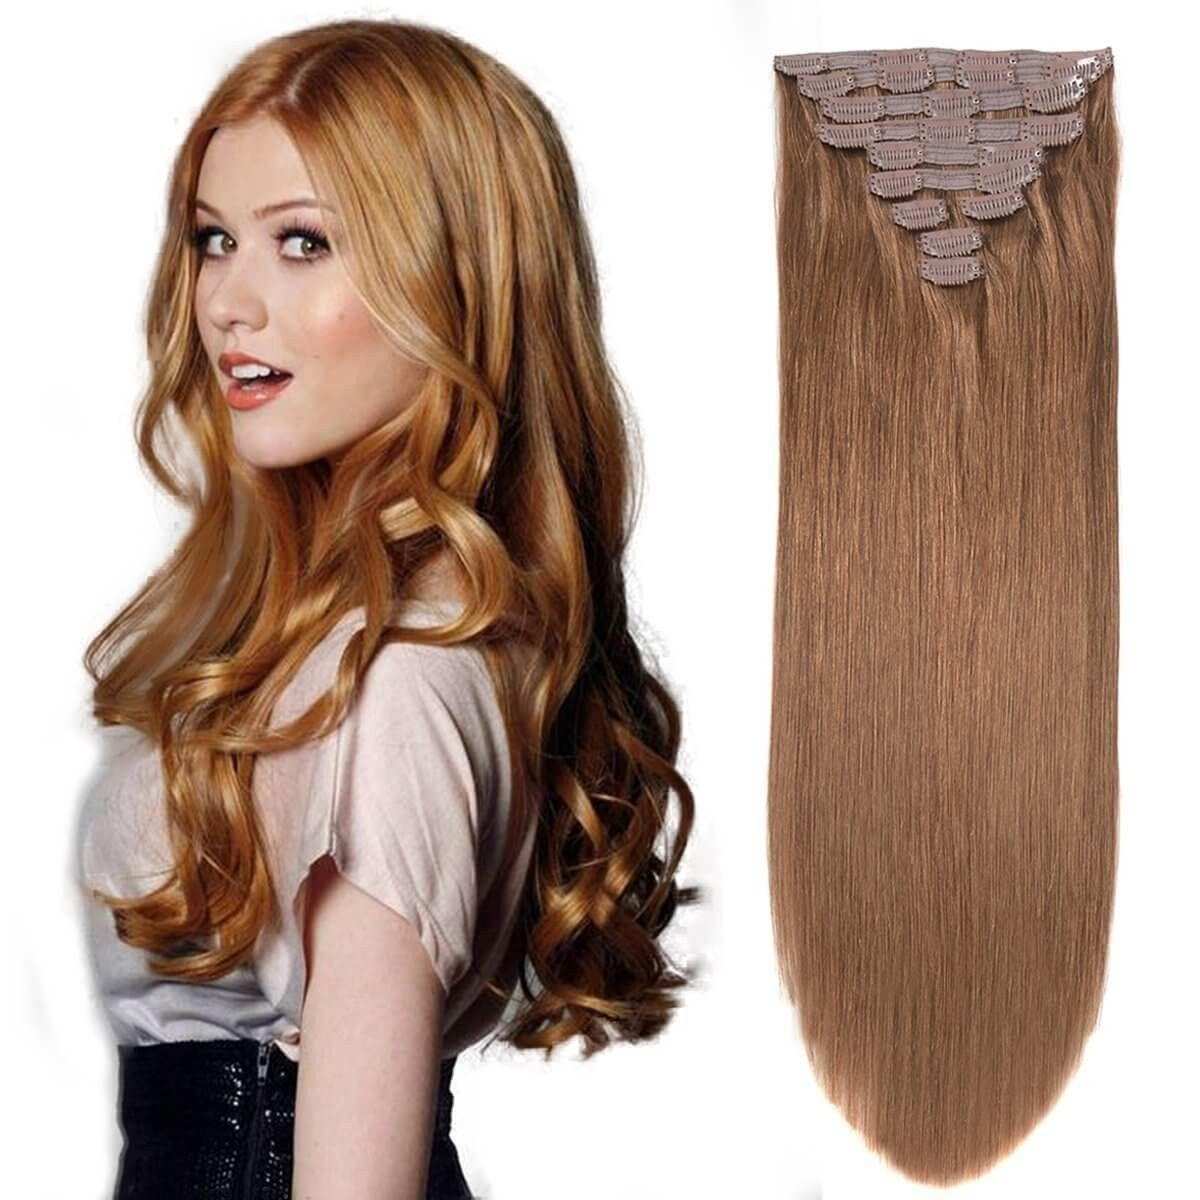 For Lovers Of True Hair Luxury We Present Zala 26 Inch Clip In